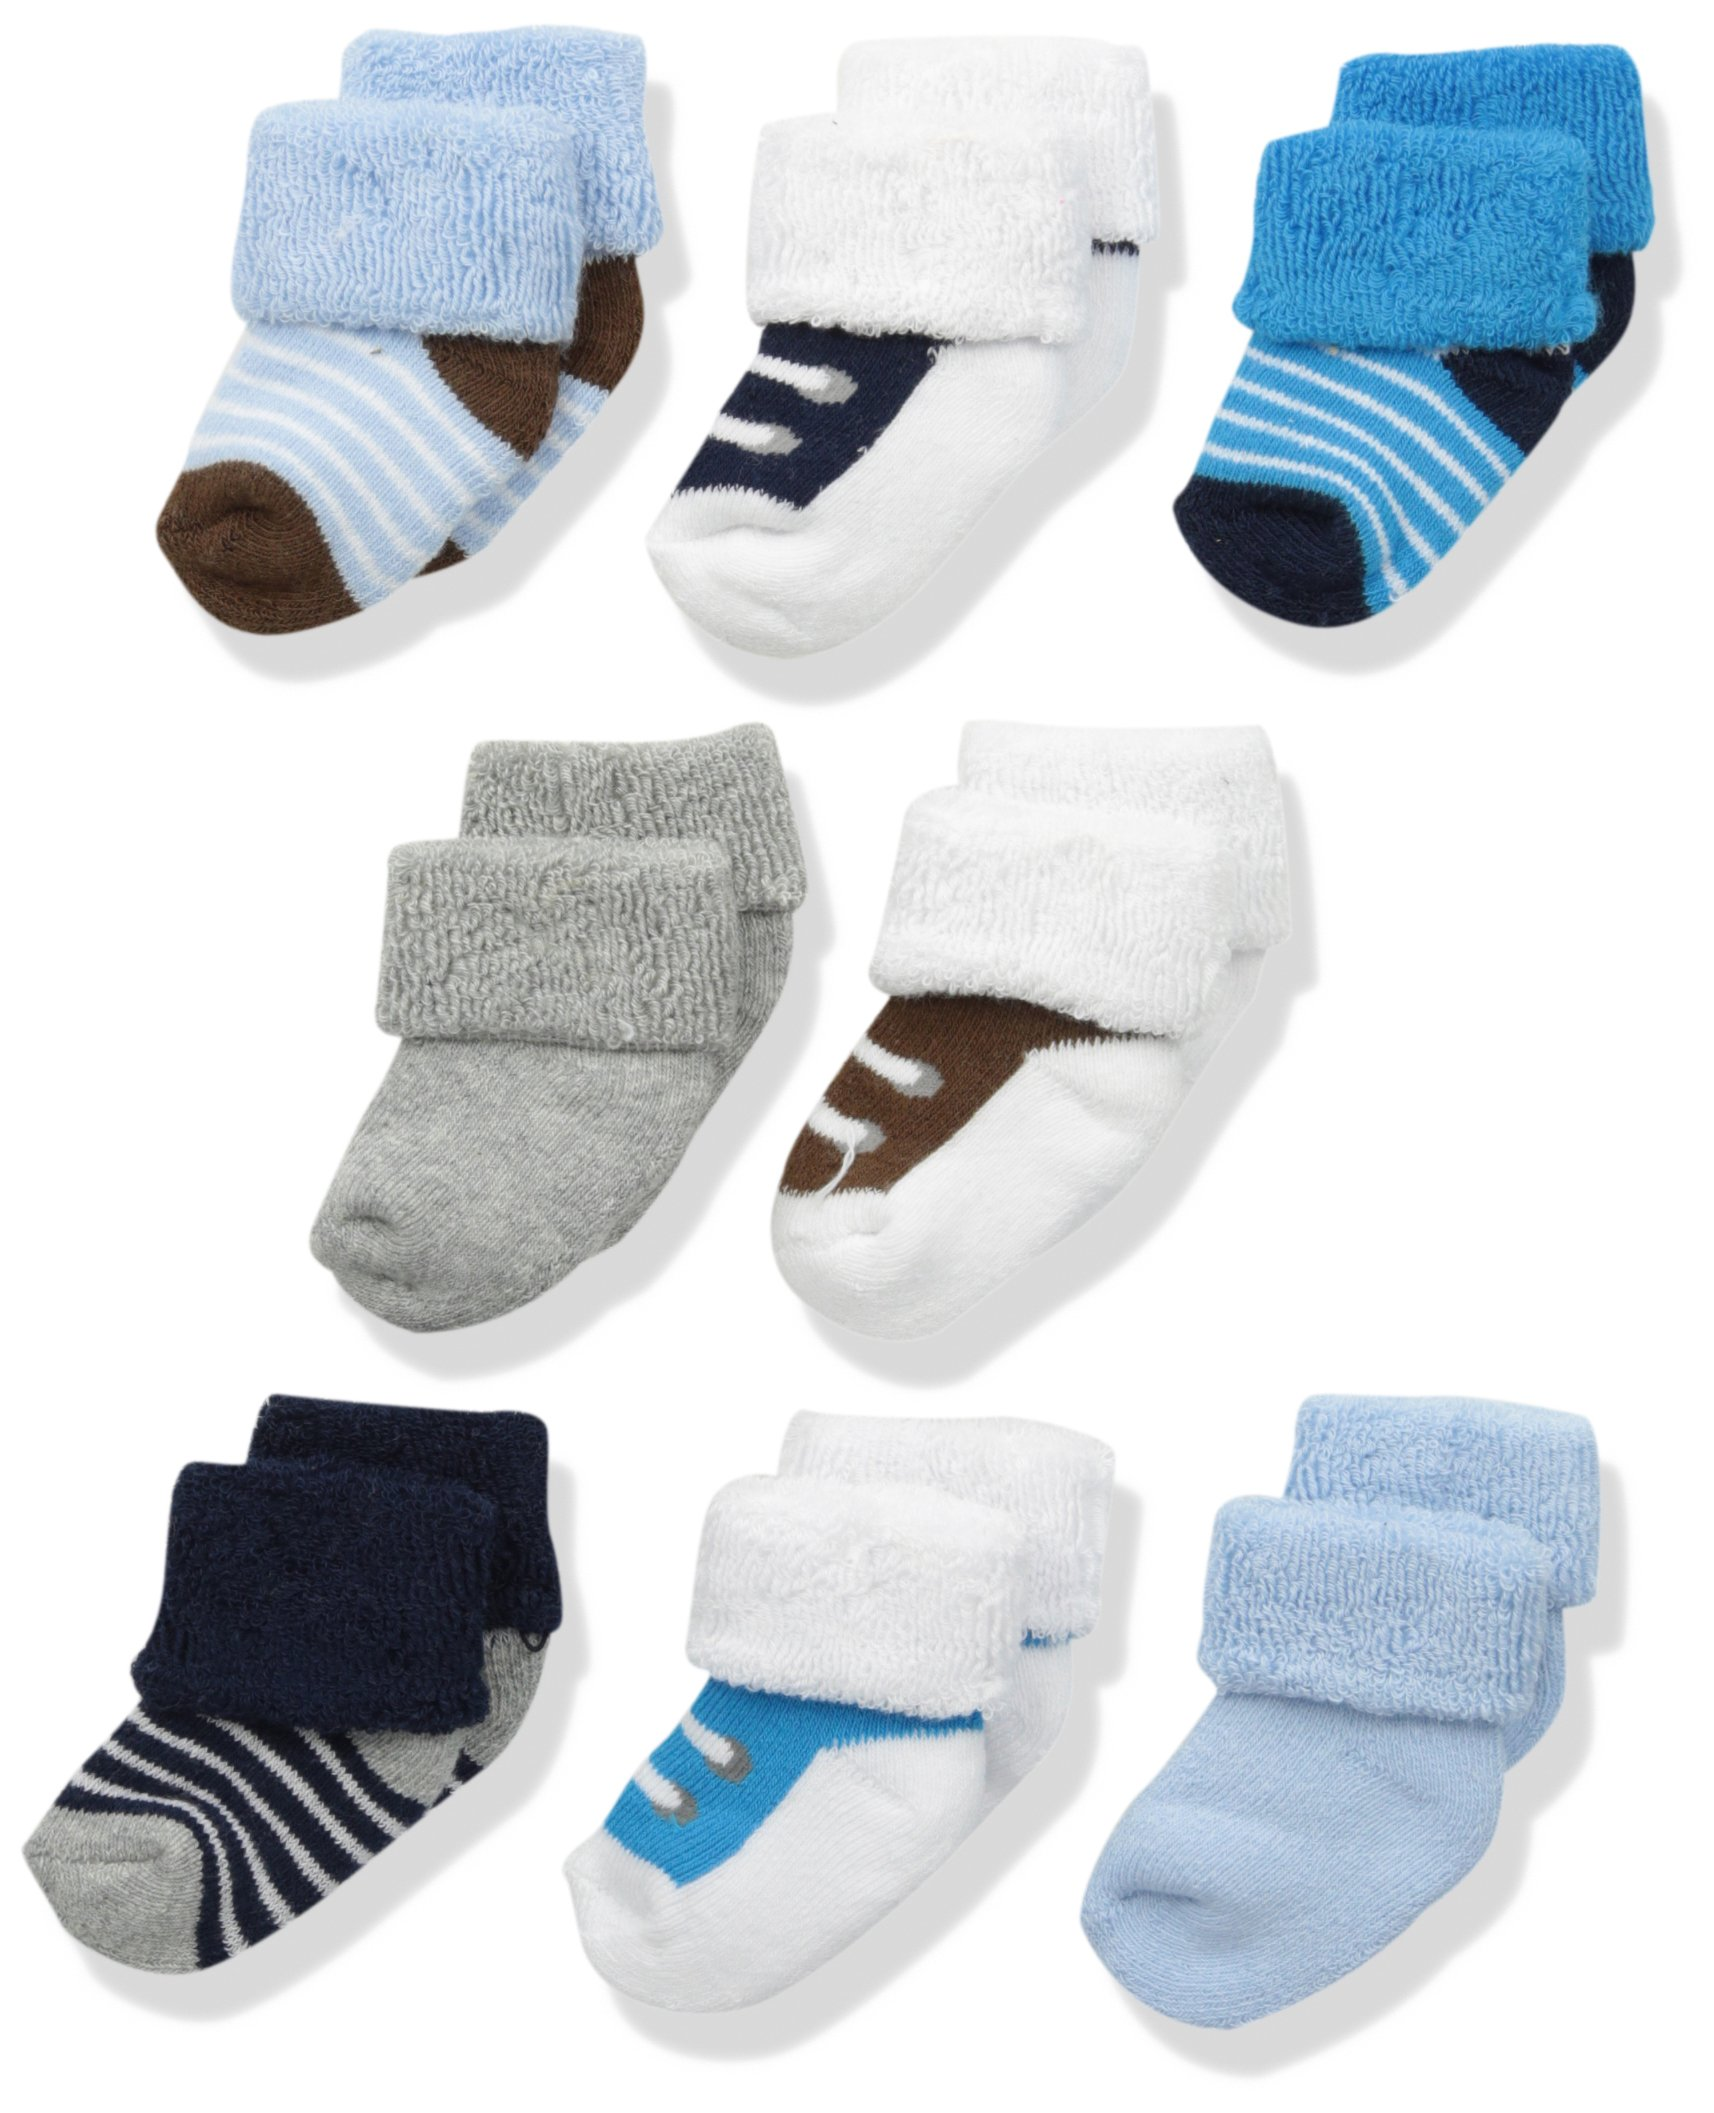 Luvable Friends Unisex 8 Pack Newborn Socks